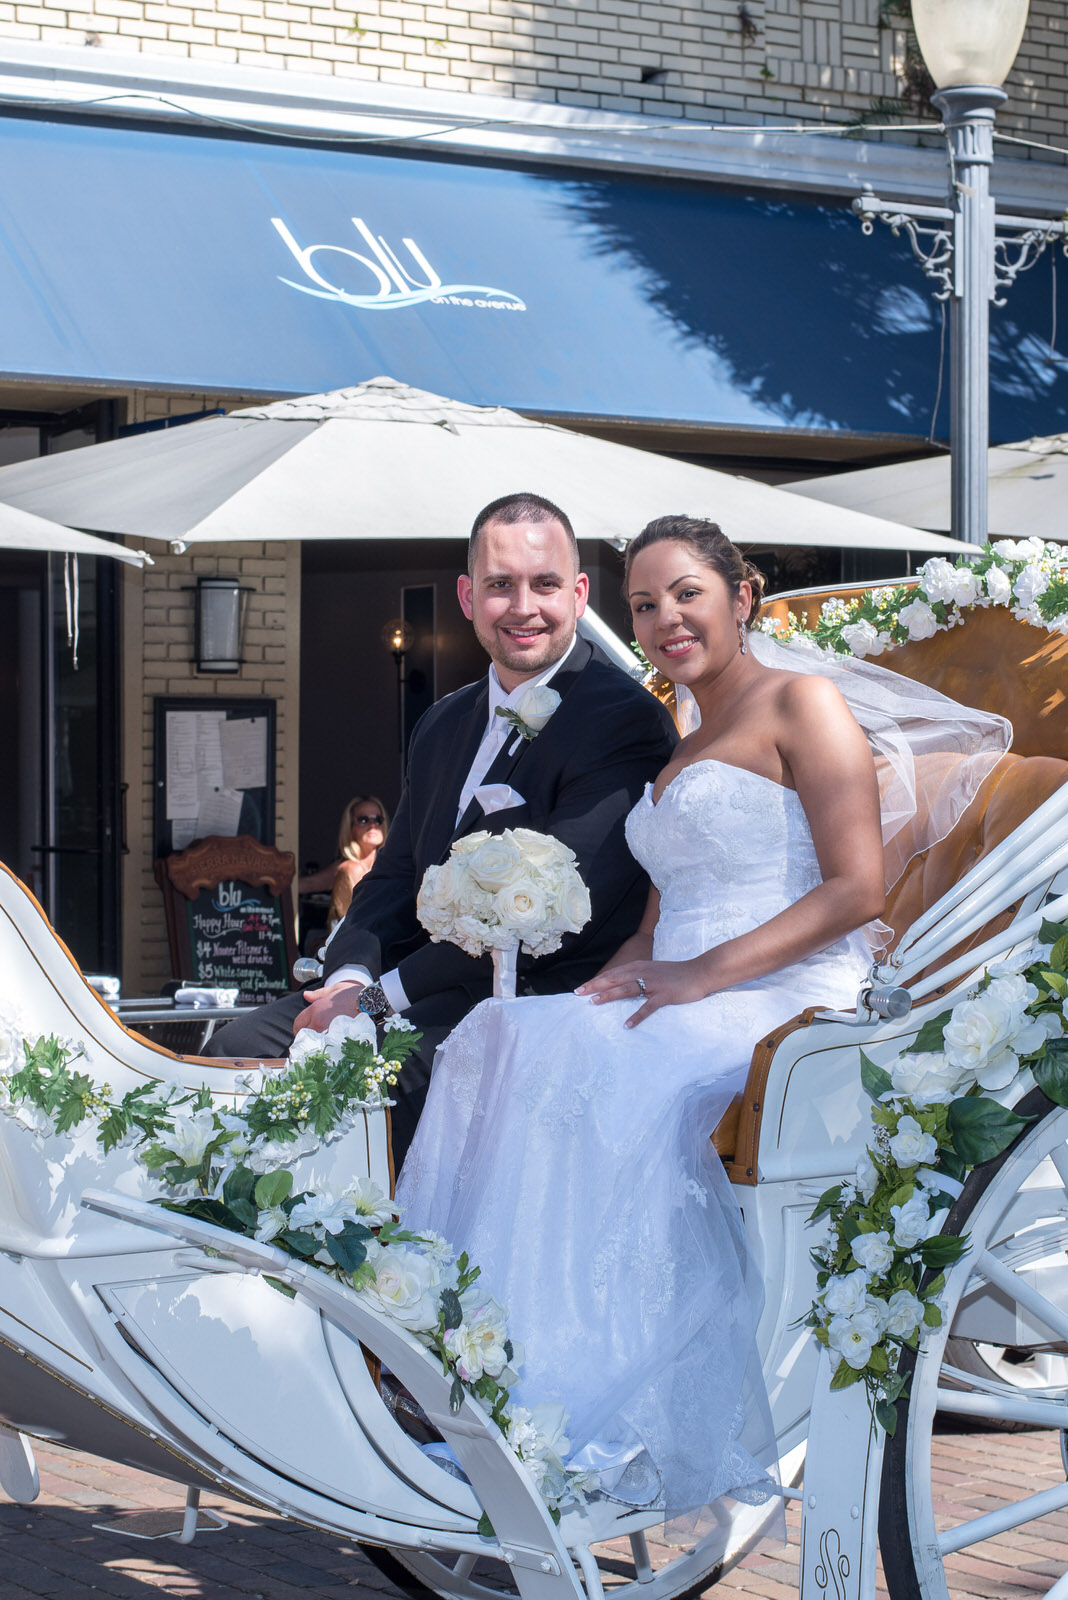 A newlywed couple pose for a photo sitting in an elegant horse drawn carriage in front of Blu restaurant on Park Avenue